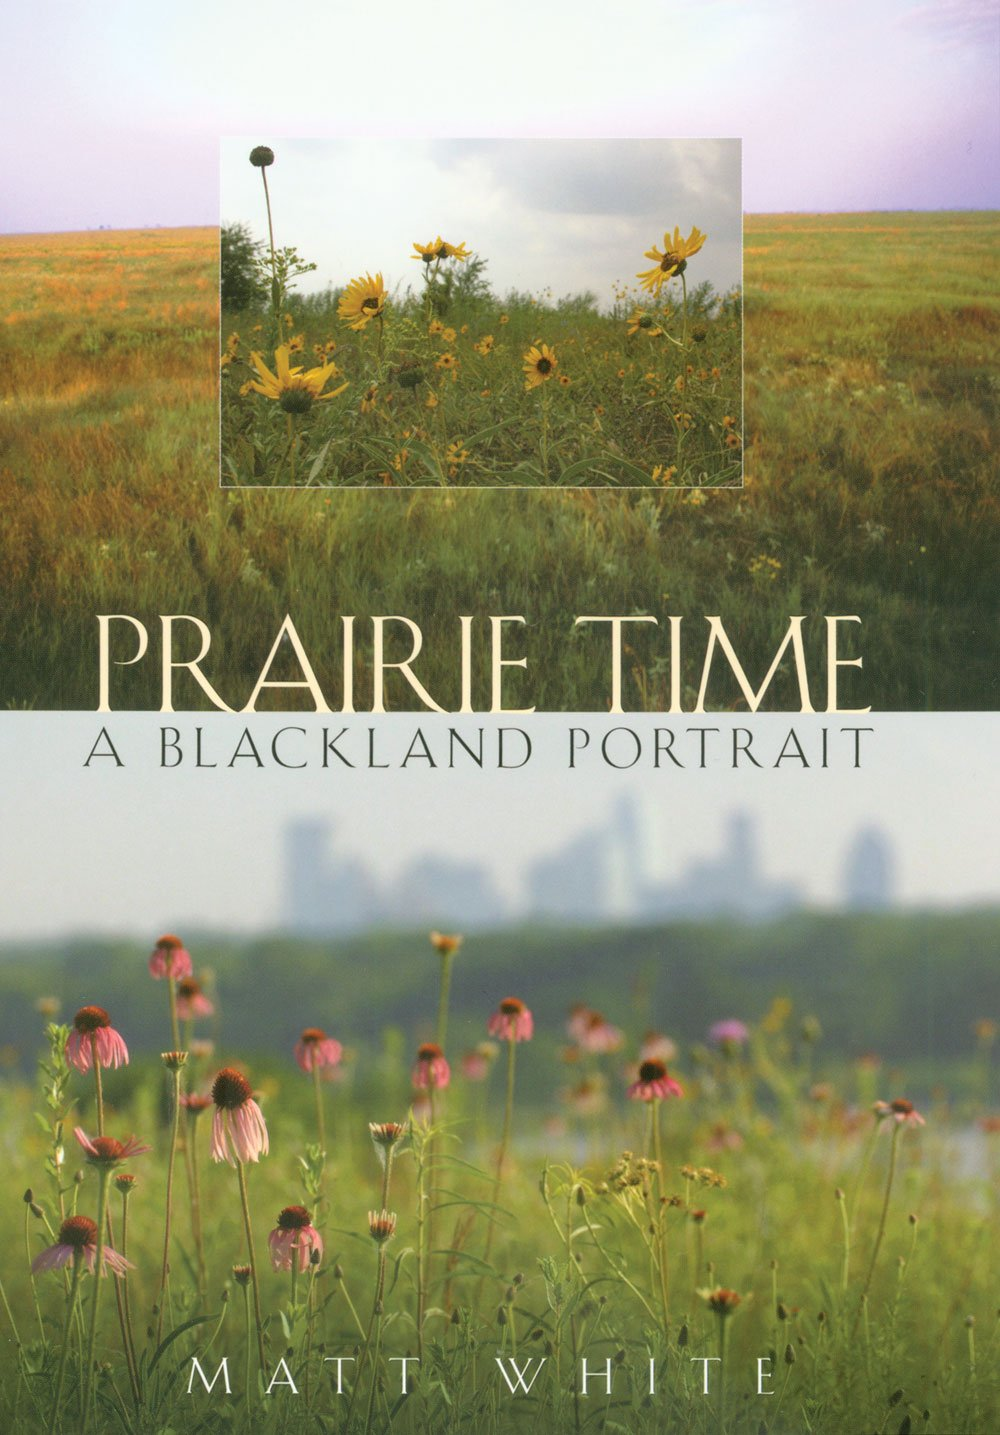 Prairie Time: A Blackland Portrait (Sam Rayburn Series on Rural Life, sponsored by Texas A&M University-Commerce) PDF